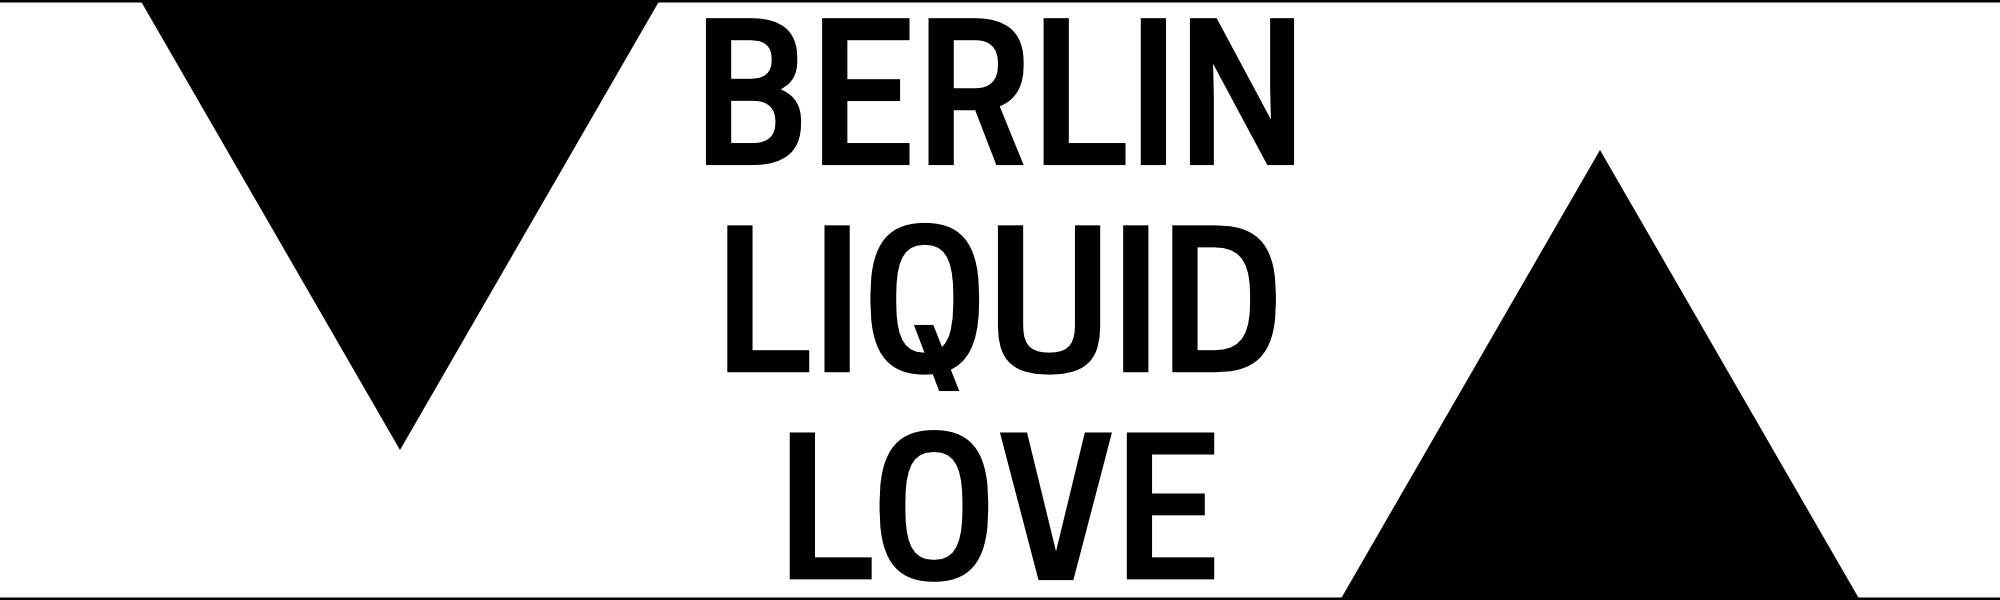 Berlin Liquid Love